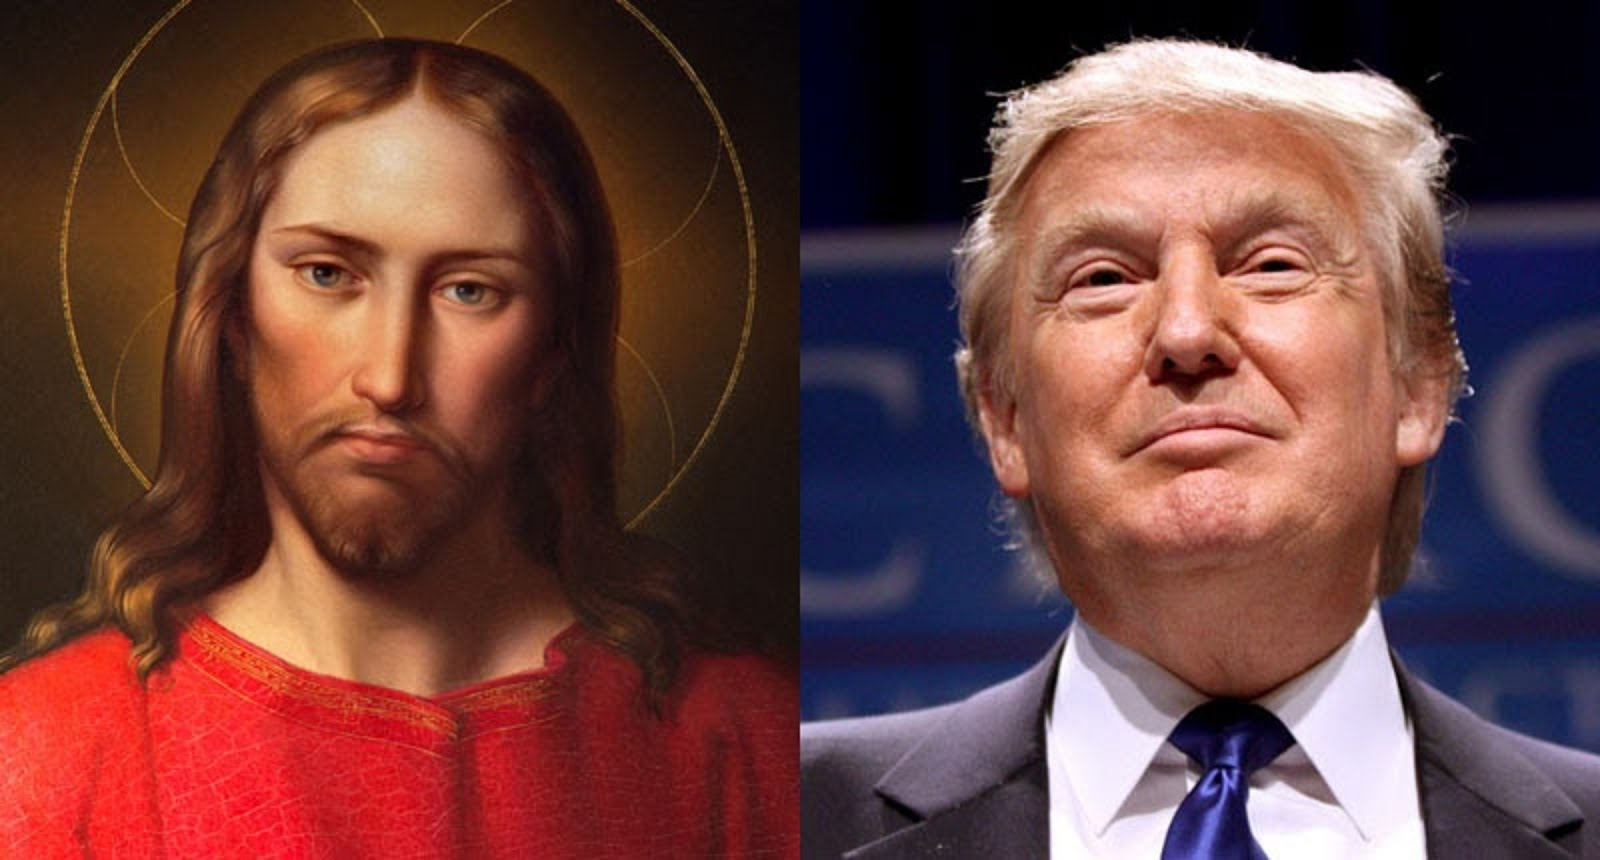 JESUS CHRIST AND DONALD TRUMP  - THE BEAST